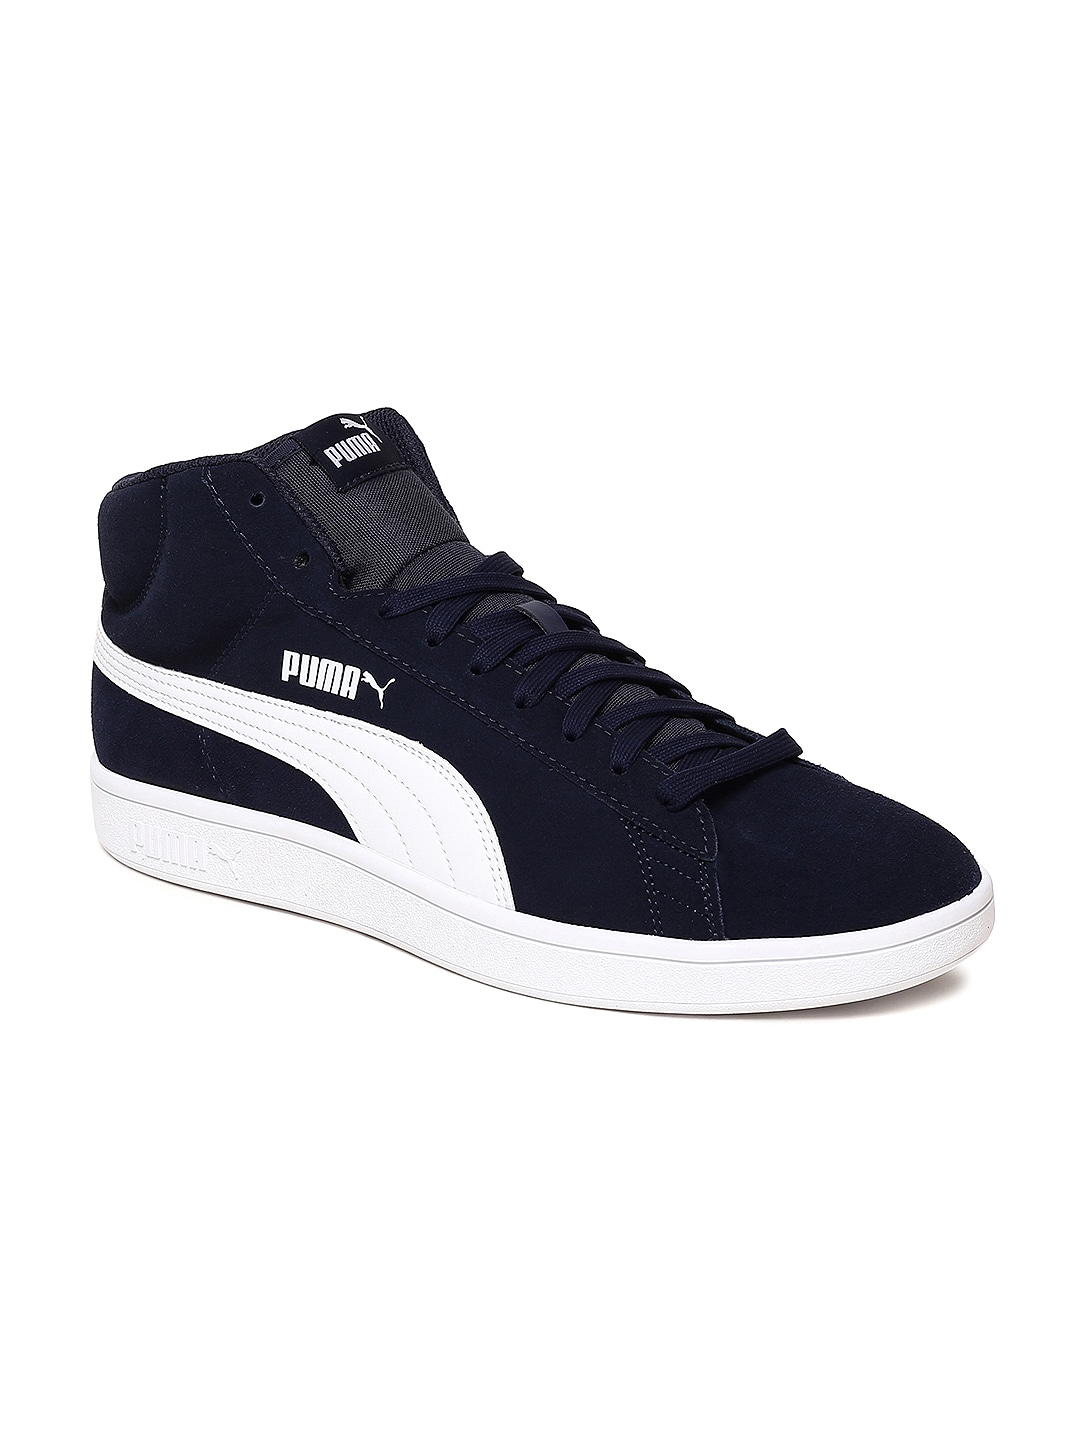 00bd6bd81f62 Puma Mid Tops Footwear - Buy Puma Mid Tops Footwear online in India